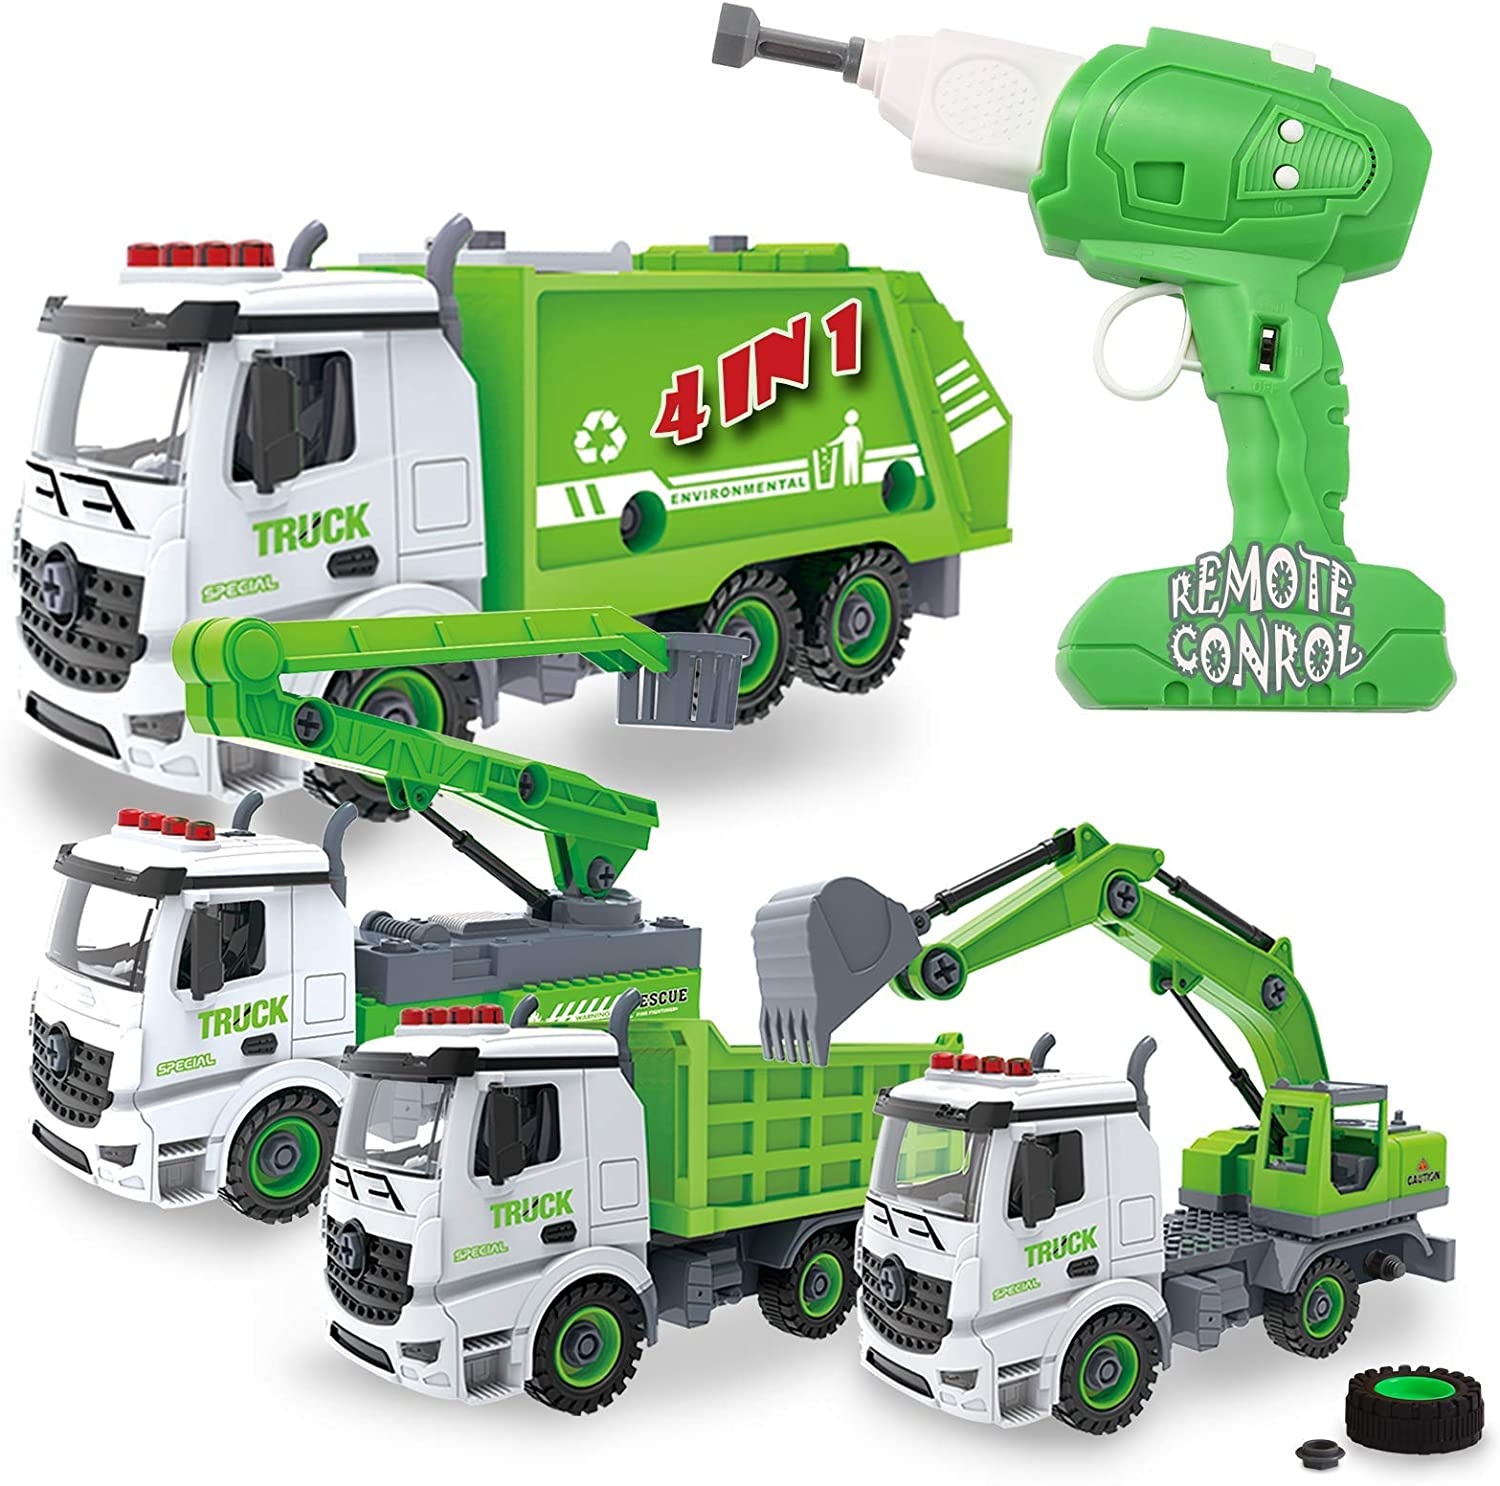 4-in-1 Take Apart Toys with Electric Drill Converts to Remote Control Car Garbage Trucks Waste Management Recycling Truck Toy for Boys: Toys & Games